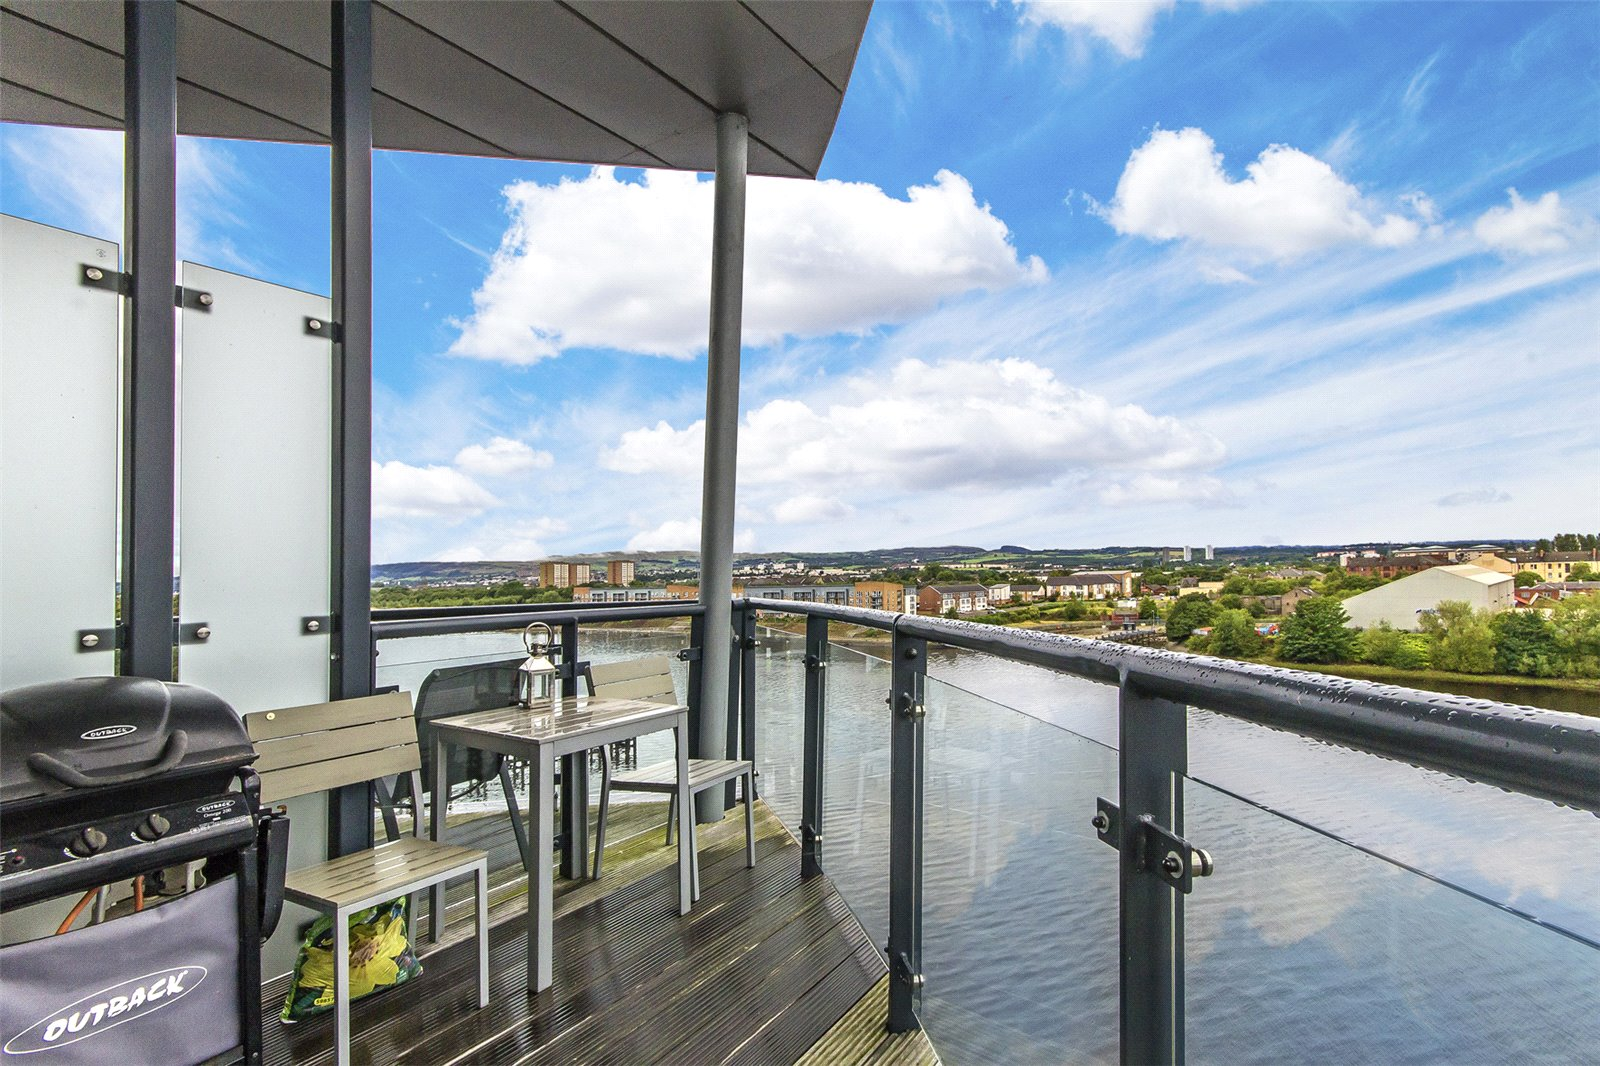 Glasgow Property of the Week: 5/2, 15 Cardon Square